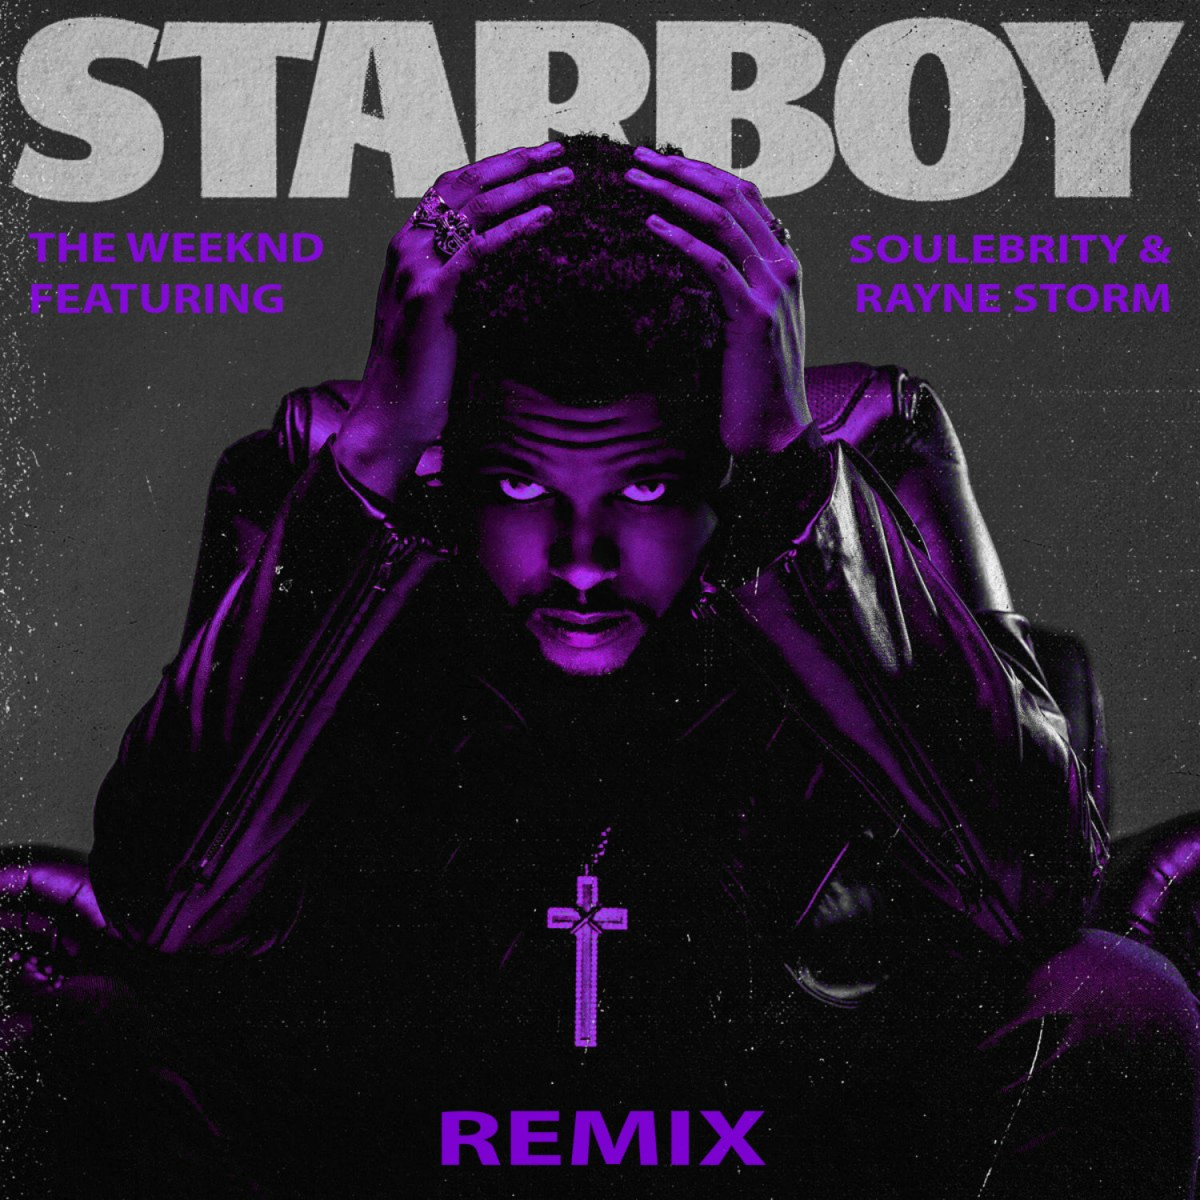 The Weeknd - Starboy (Remix) ft. Soulebrity, Rayne Storm & Daft Punk